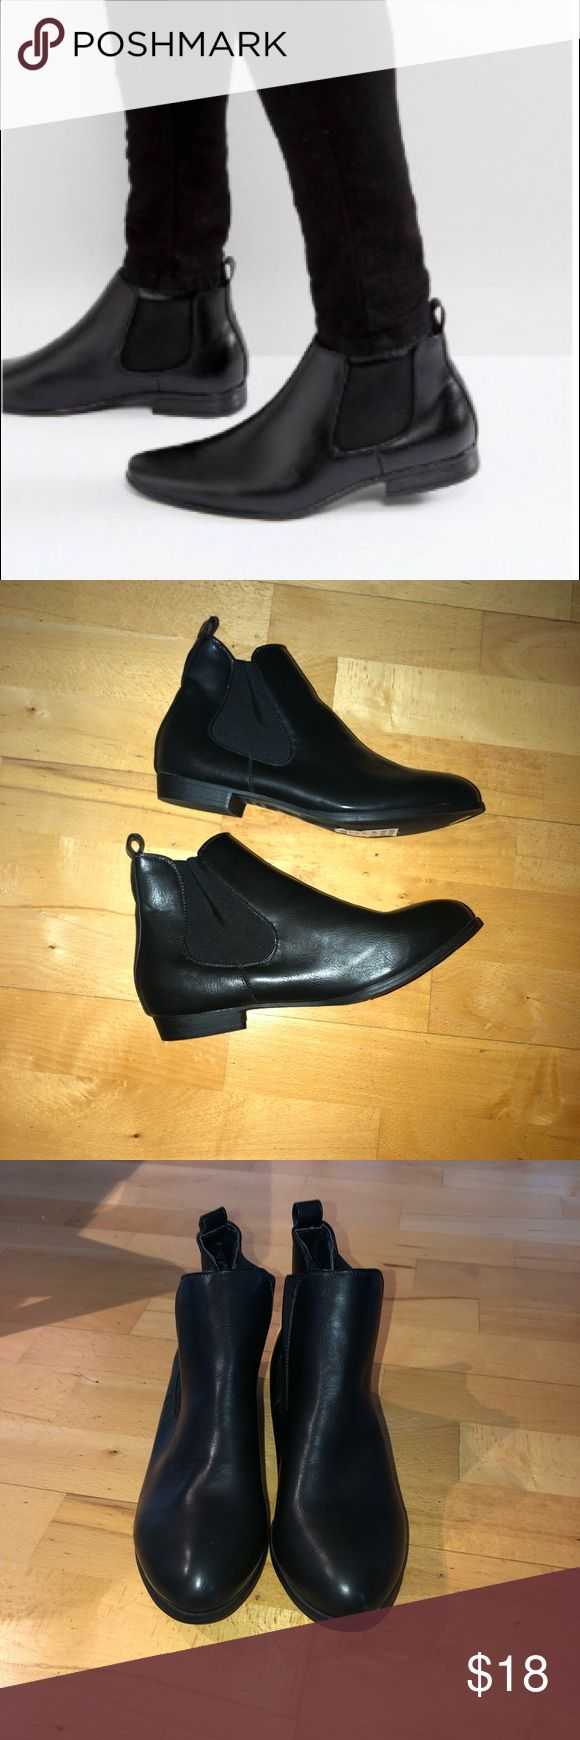 NWOB New Look Chelsea Boots Boots by New Look, Faux-leather upper, Elasticated inserts, Round toe, Pull tab in back. Never been work with stickers on! Says Size UK 8, EU 42 but I think based on fit it is a 10/11. New Look Shoes Ankle Boots & Booties